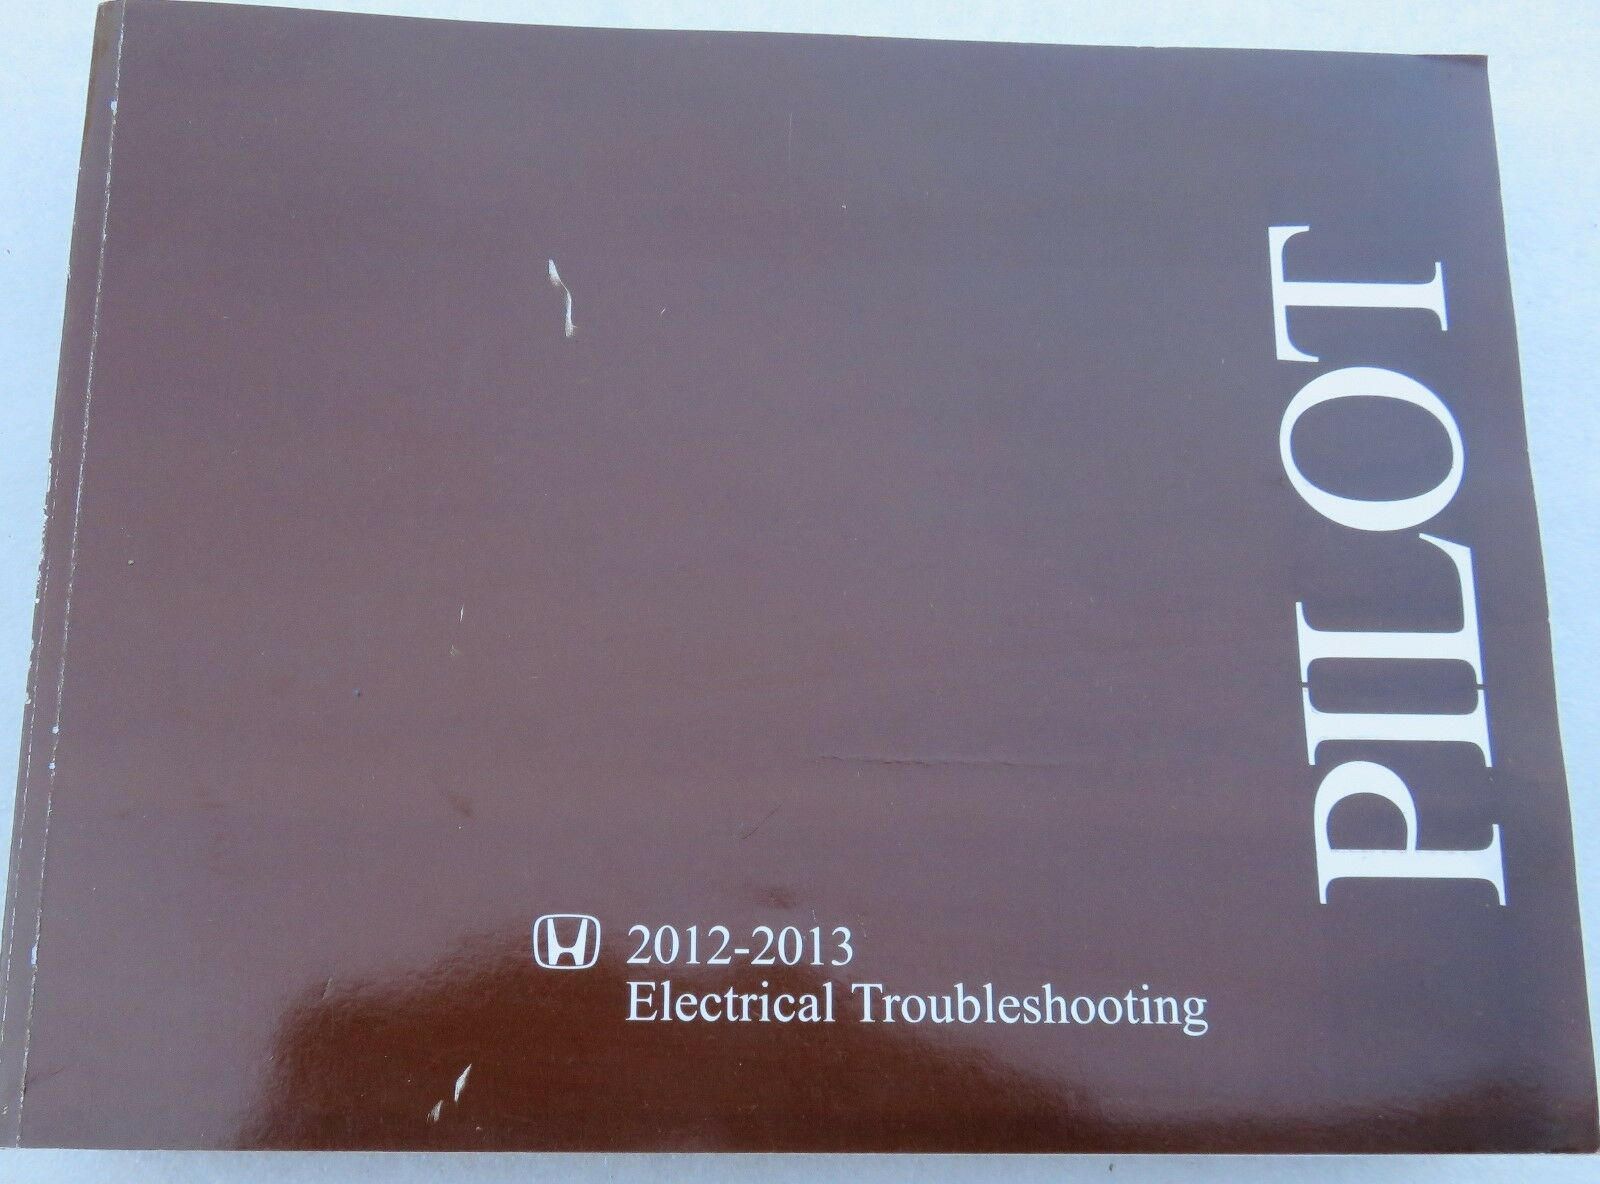 Wiring Diagram For Honda Pilot Page 3 And Schematics 2012 2013 Factory Service Manual Electrical Etm Book